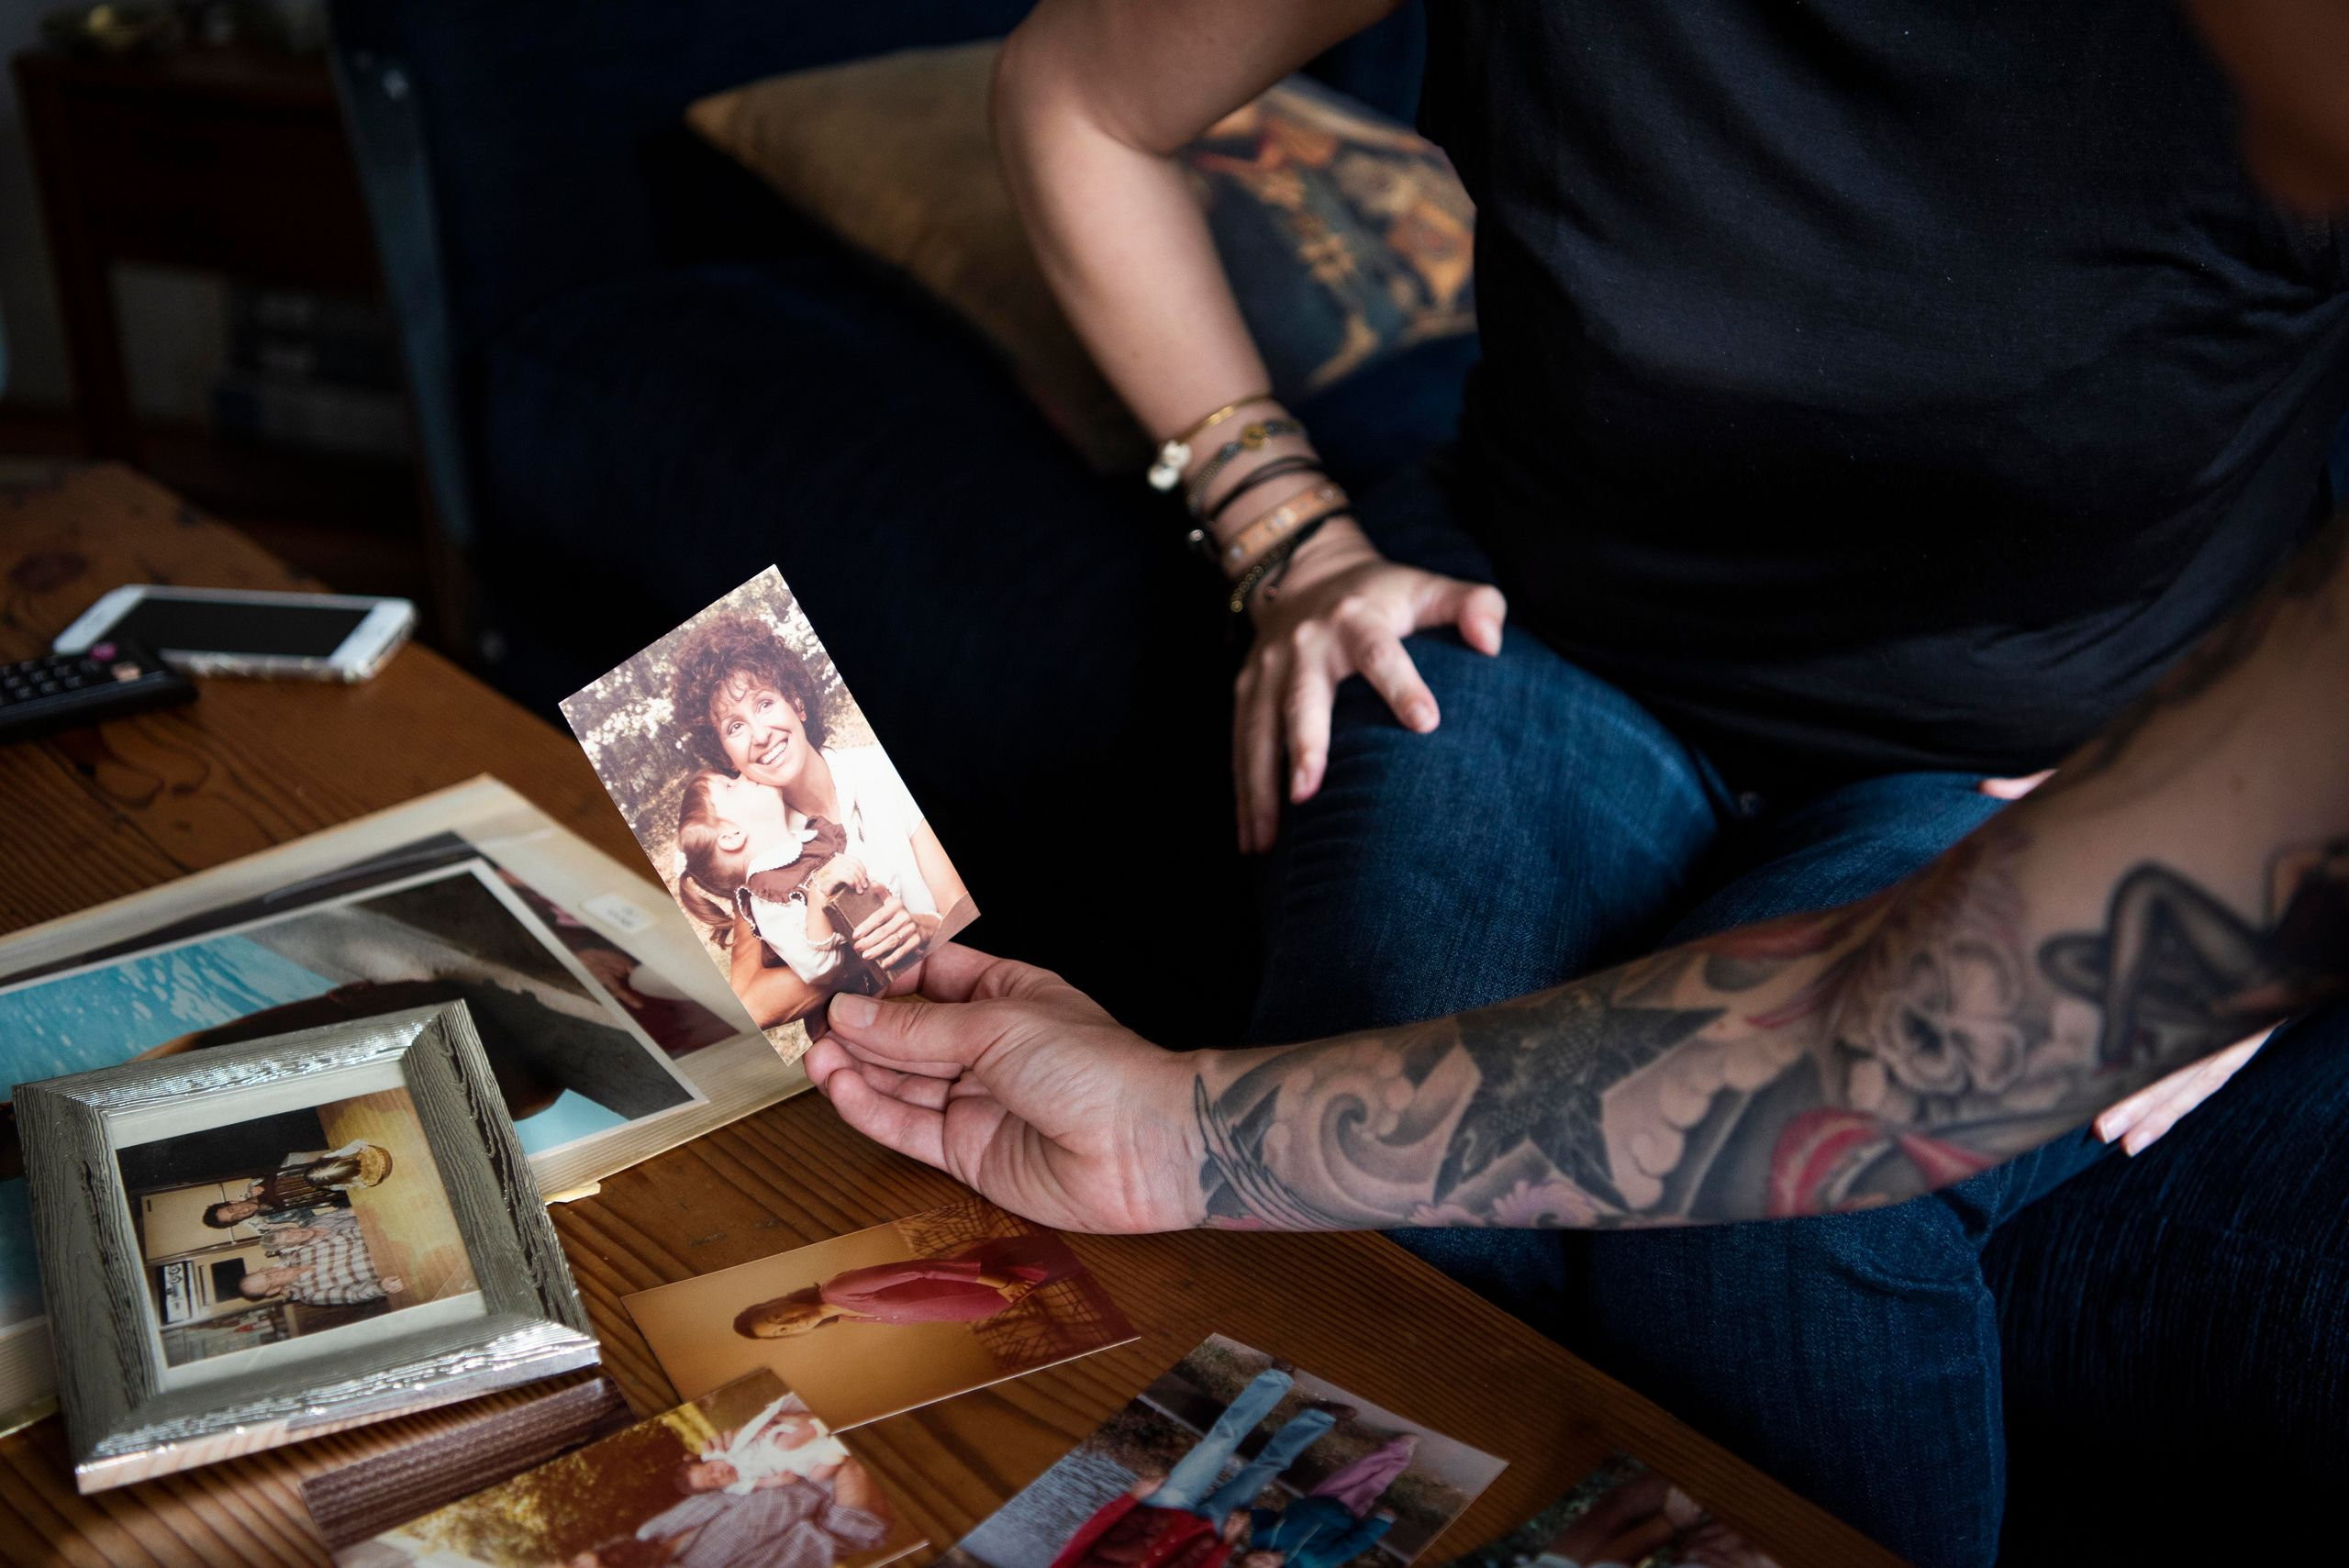 Ali Cole, right, looks at a childhood photo of Jess McIntosh and her mother, Nana McIntosh.